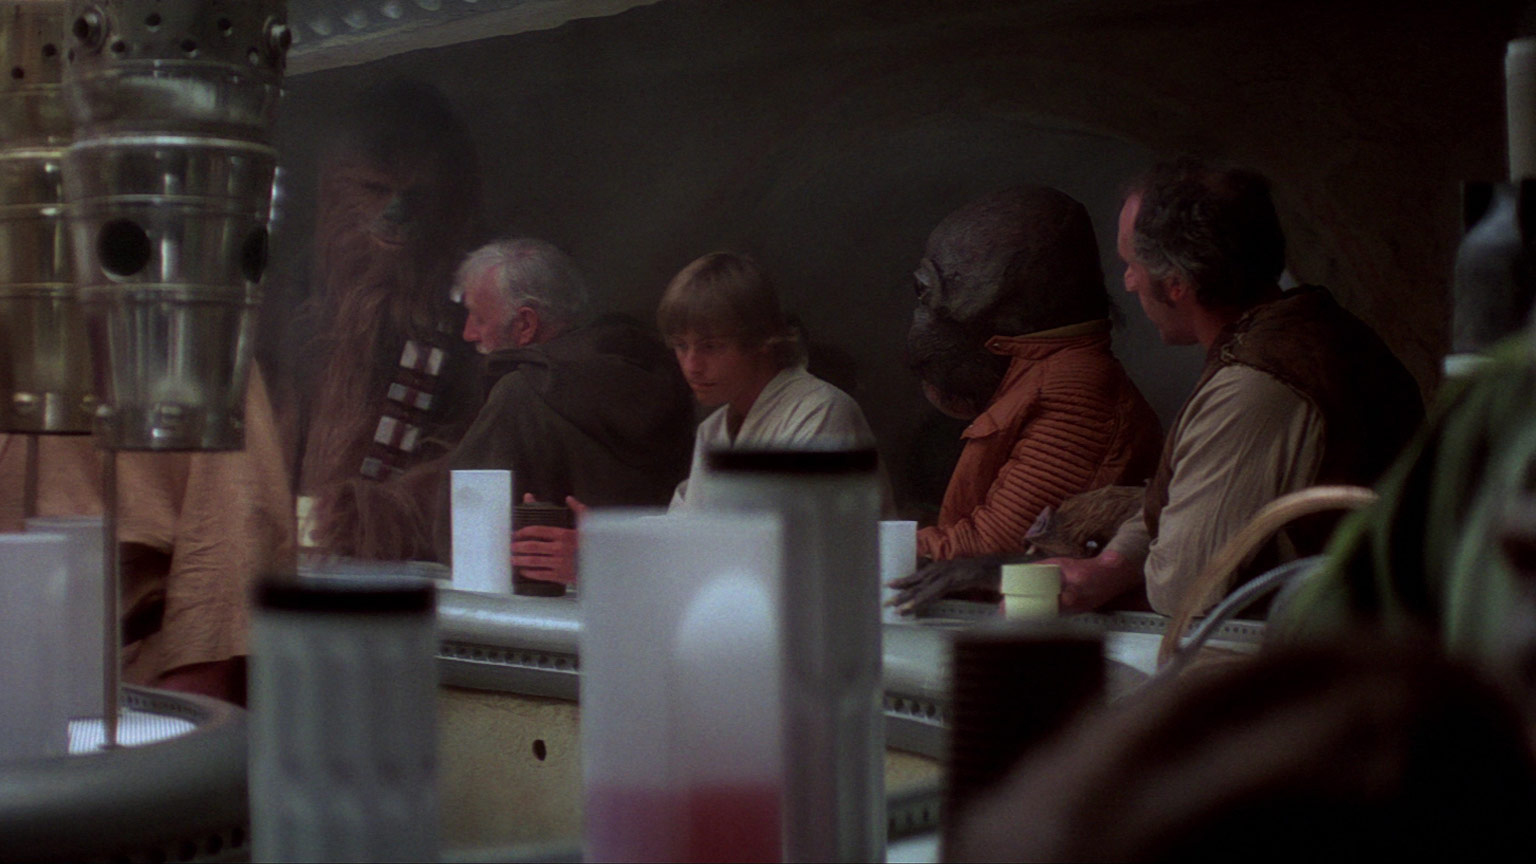 Luke and Obi-Wan in the cantina.